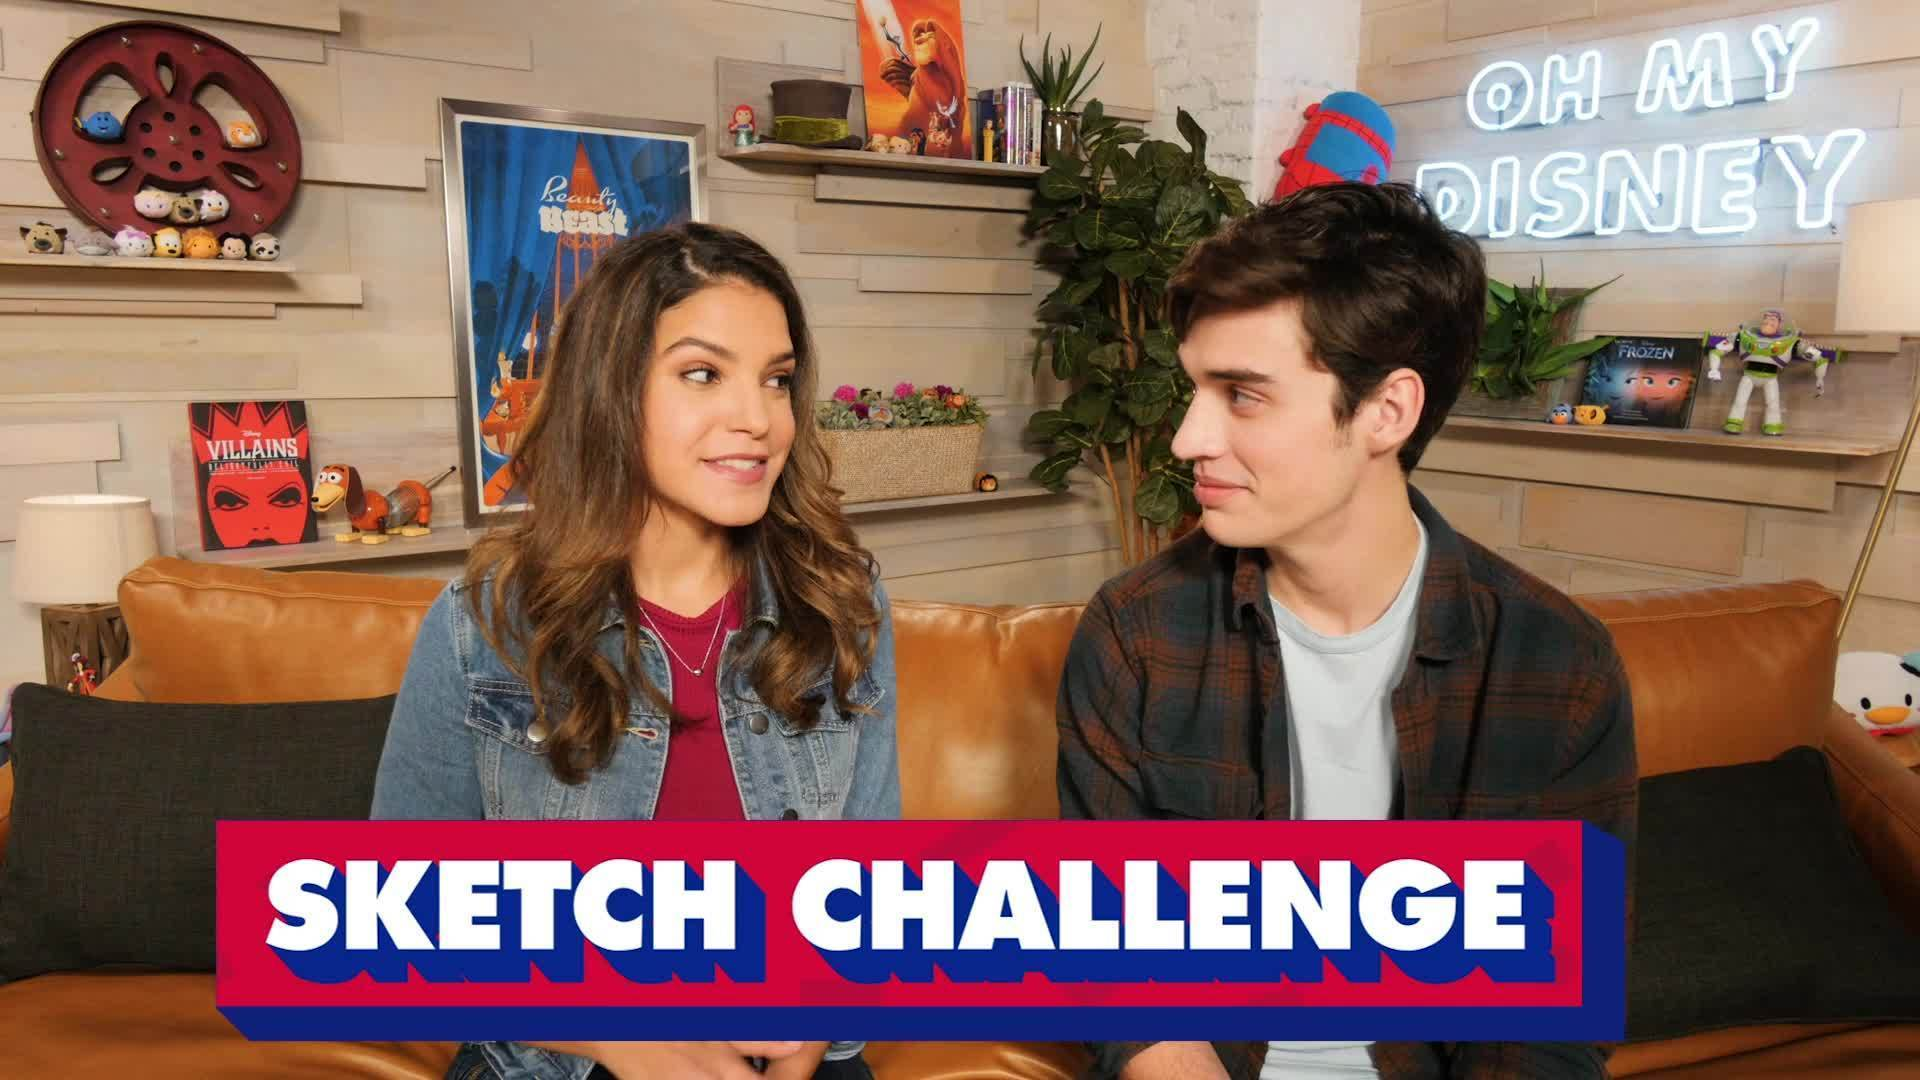 Joey Bragg Tries the Disney Sketch Challenge | The Oh My Disney Show